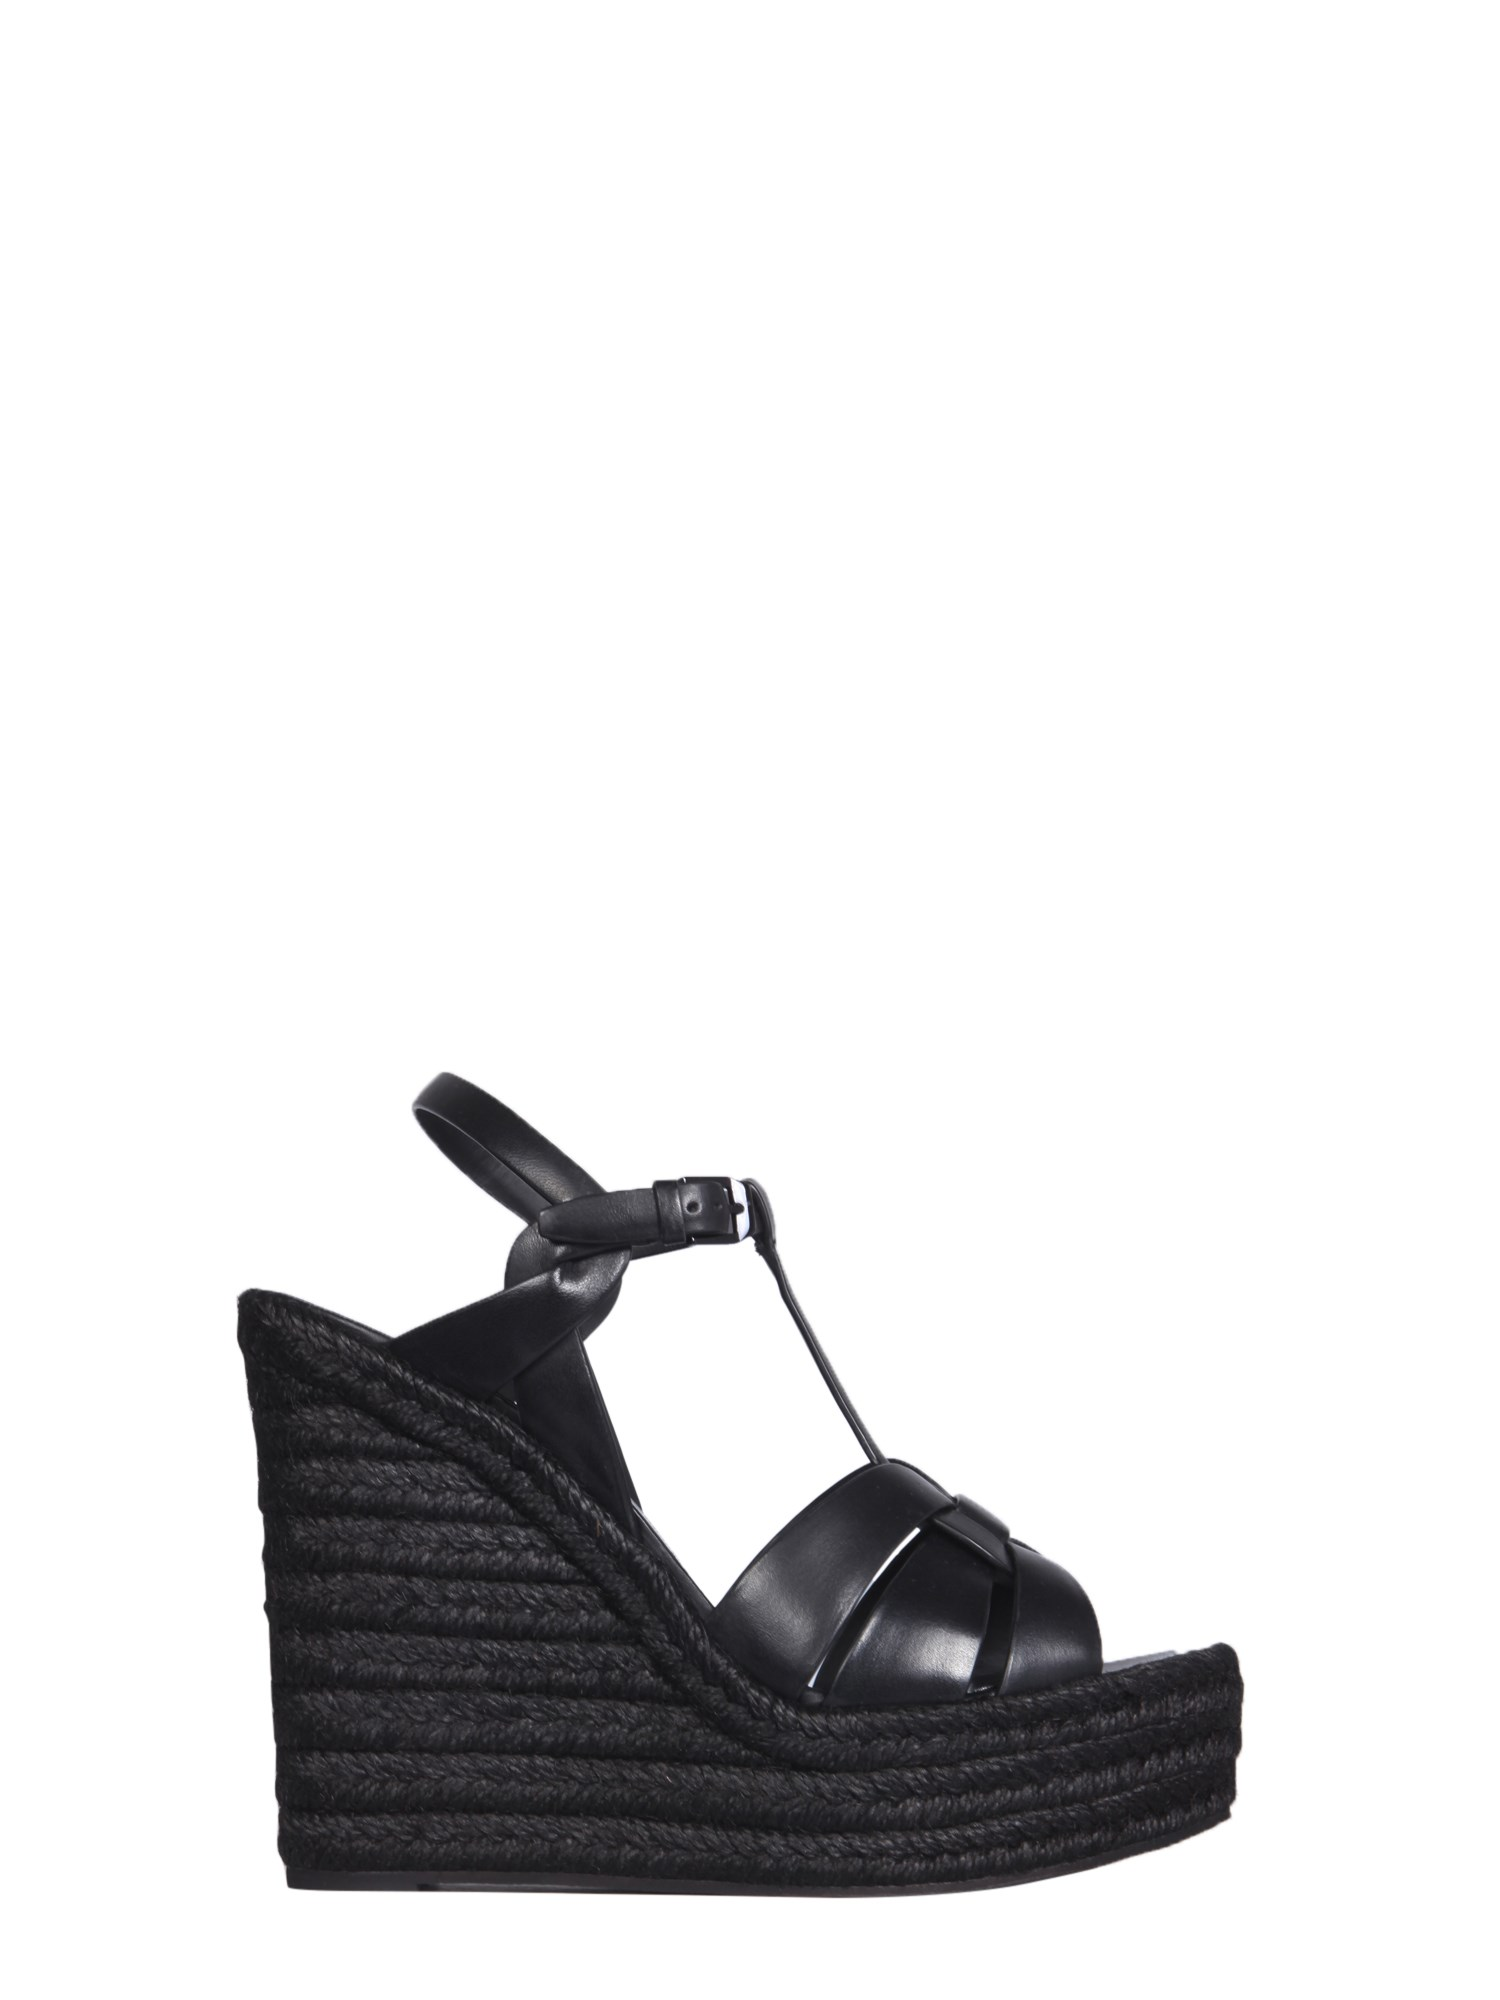 Saint Laurent TRIBUTE WEDGE ESPADRILLES